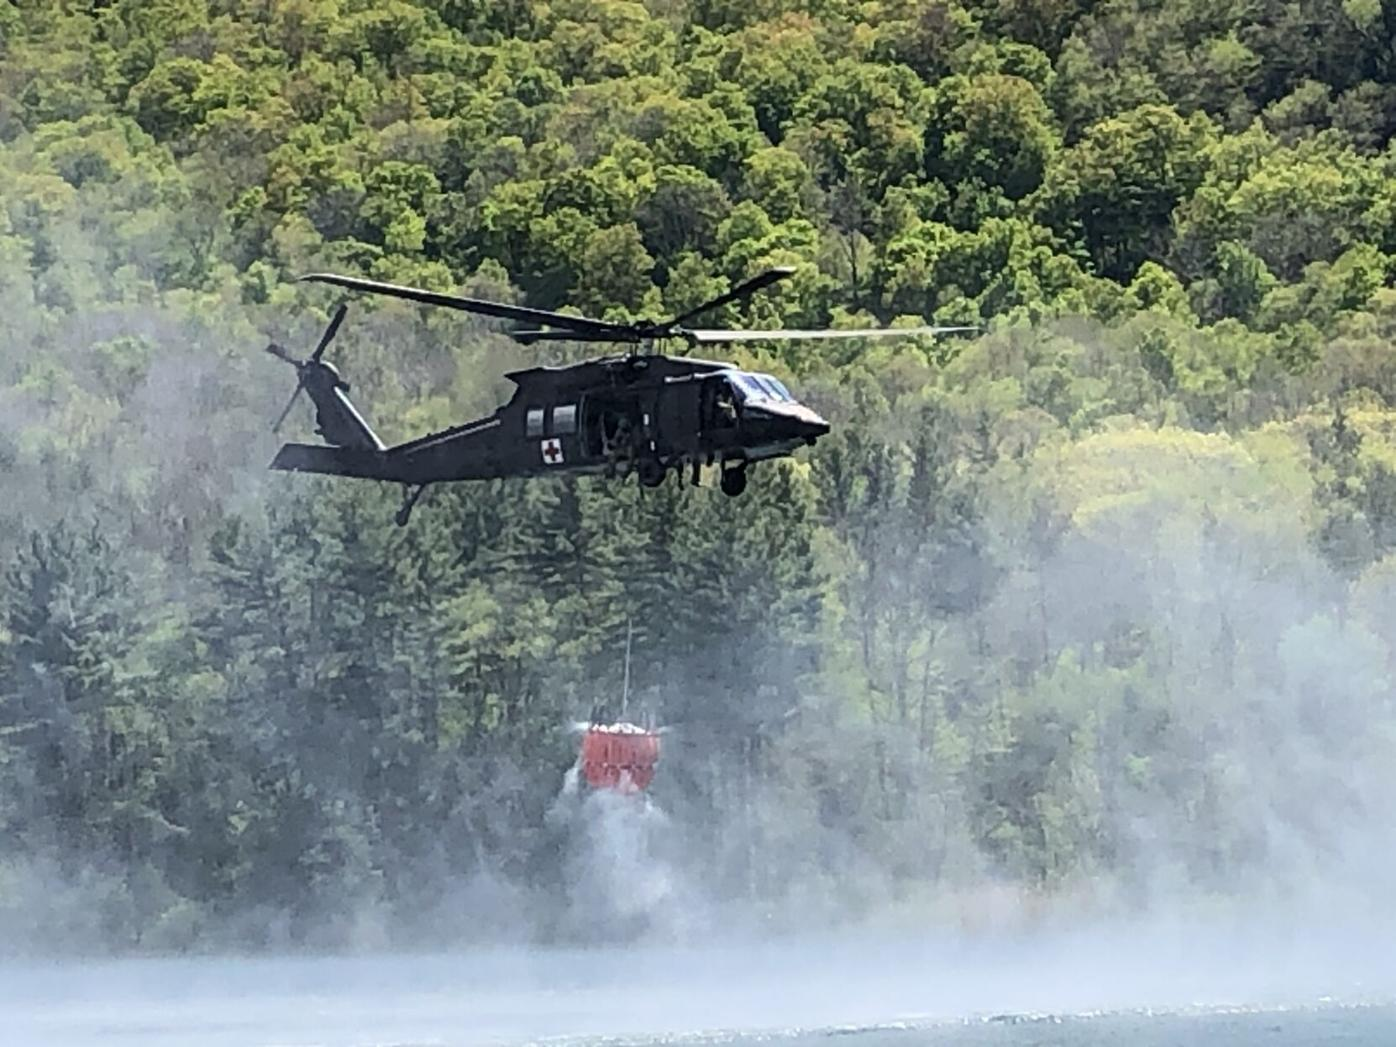 Helicopter water